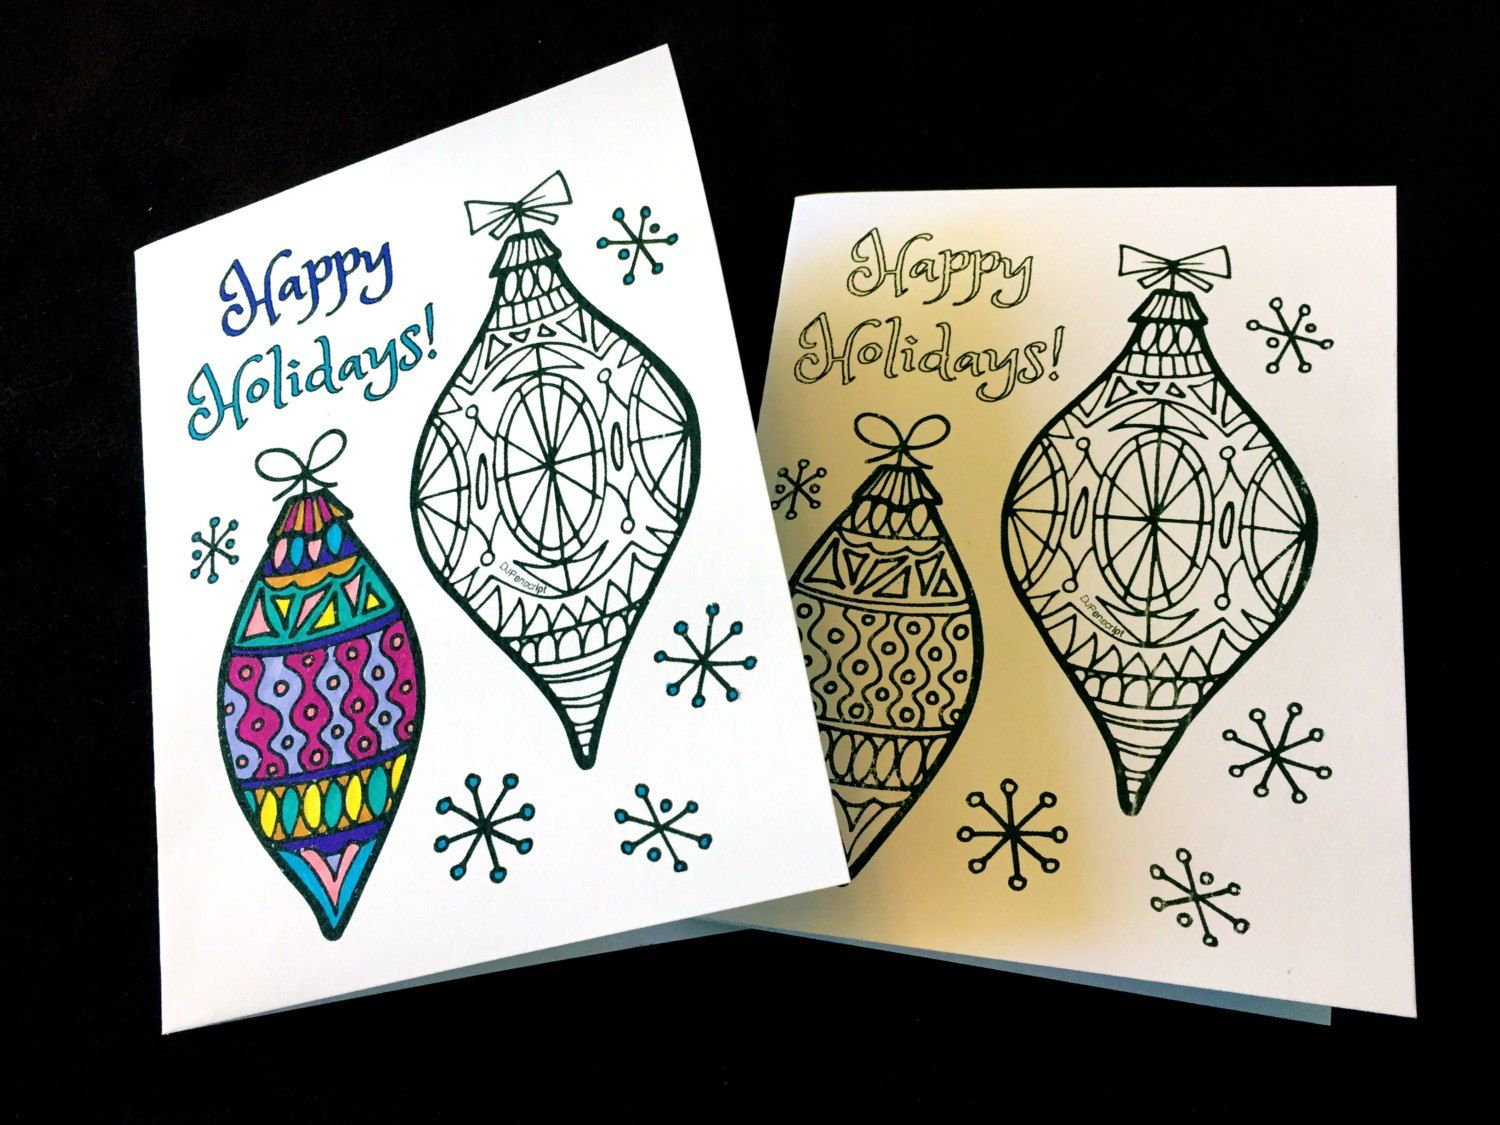 Happy Holidays Greeting Card With Ornaments